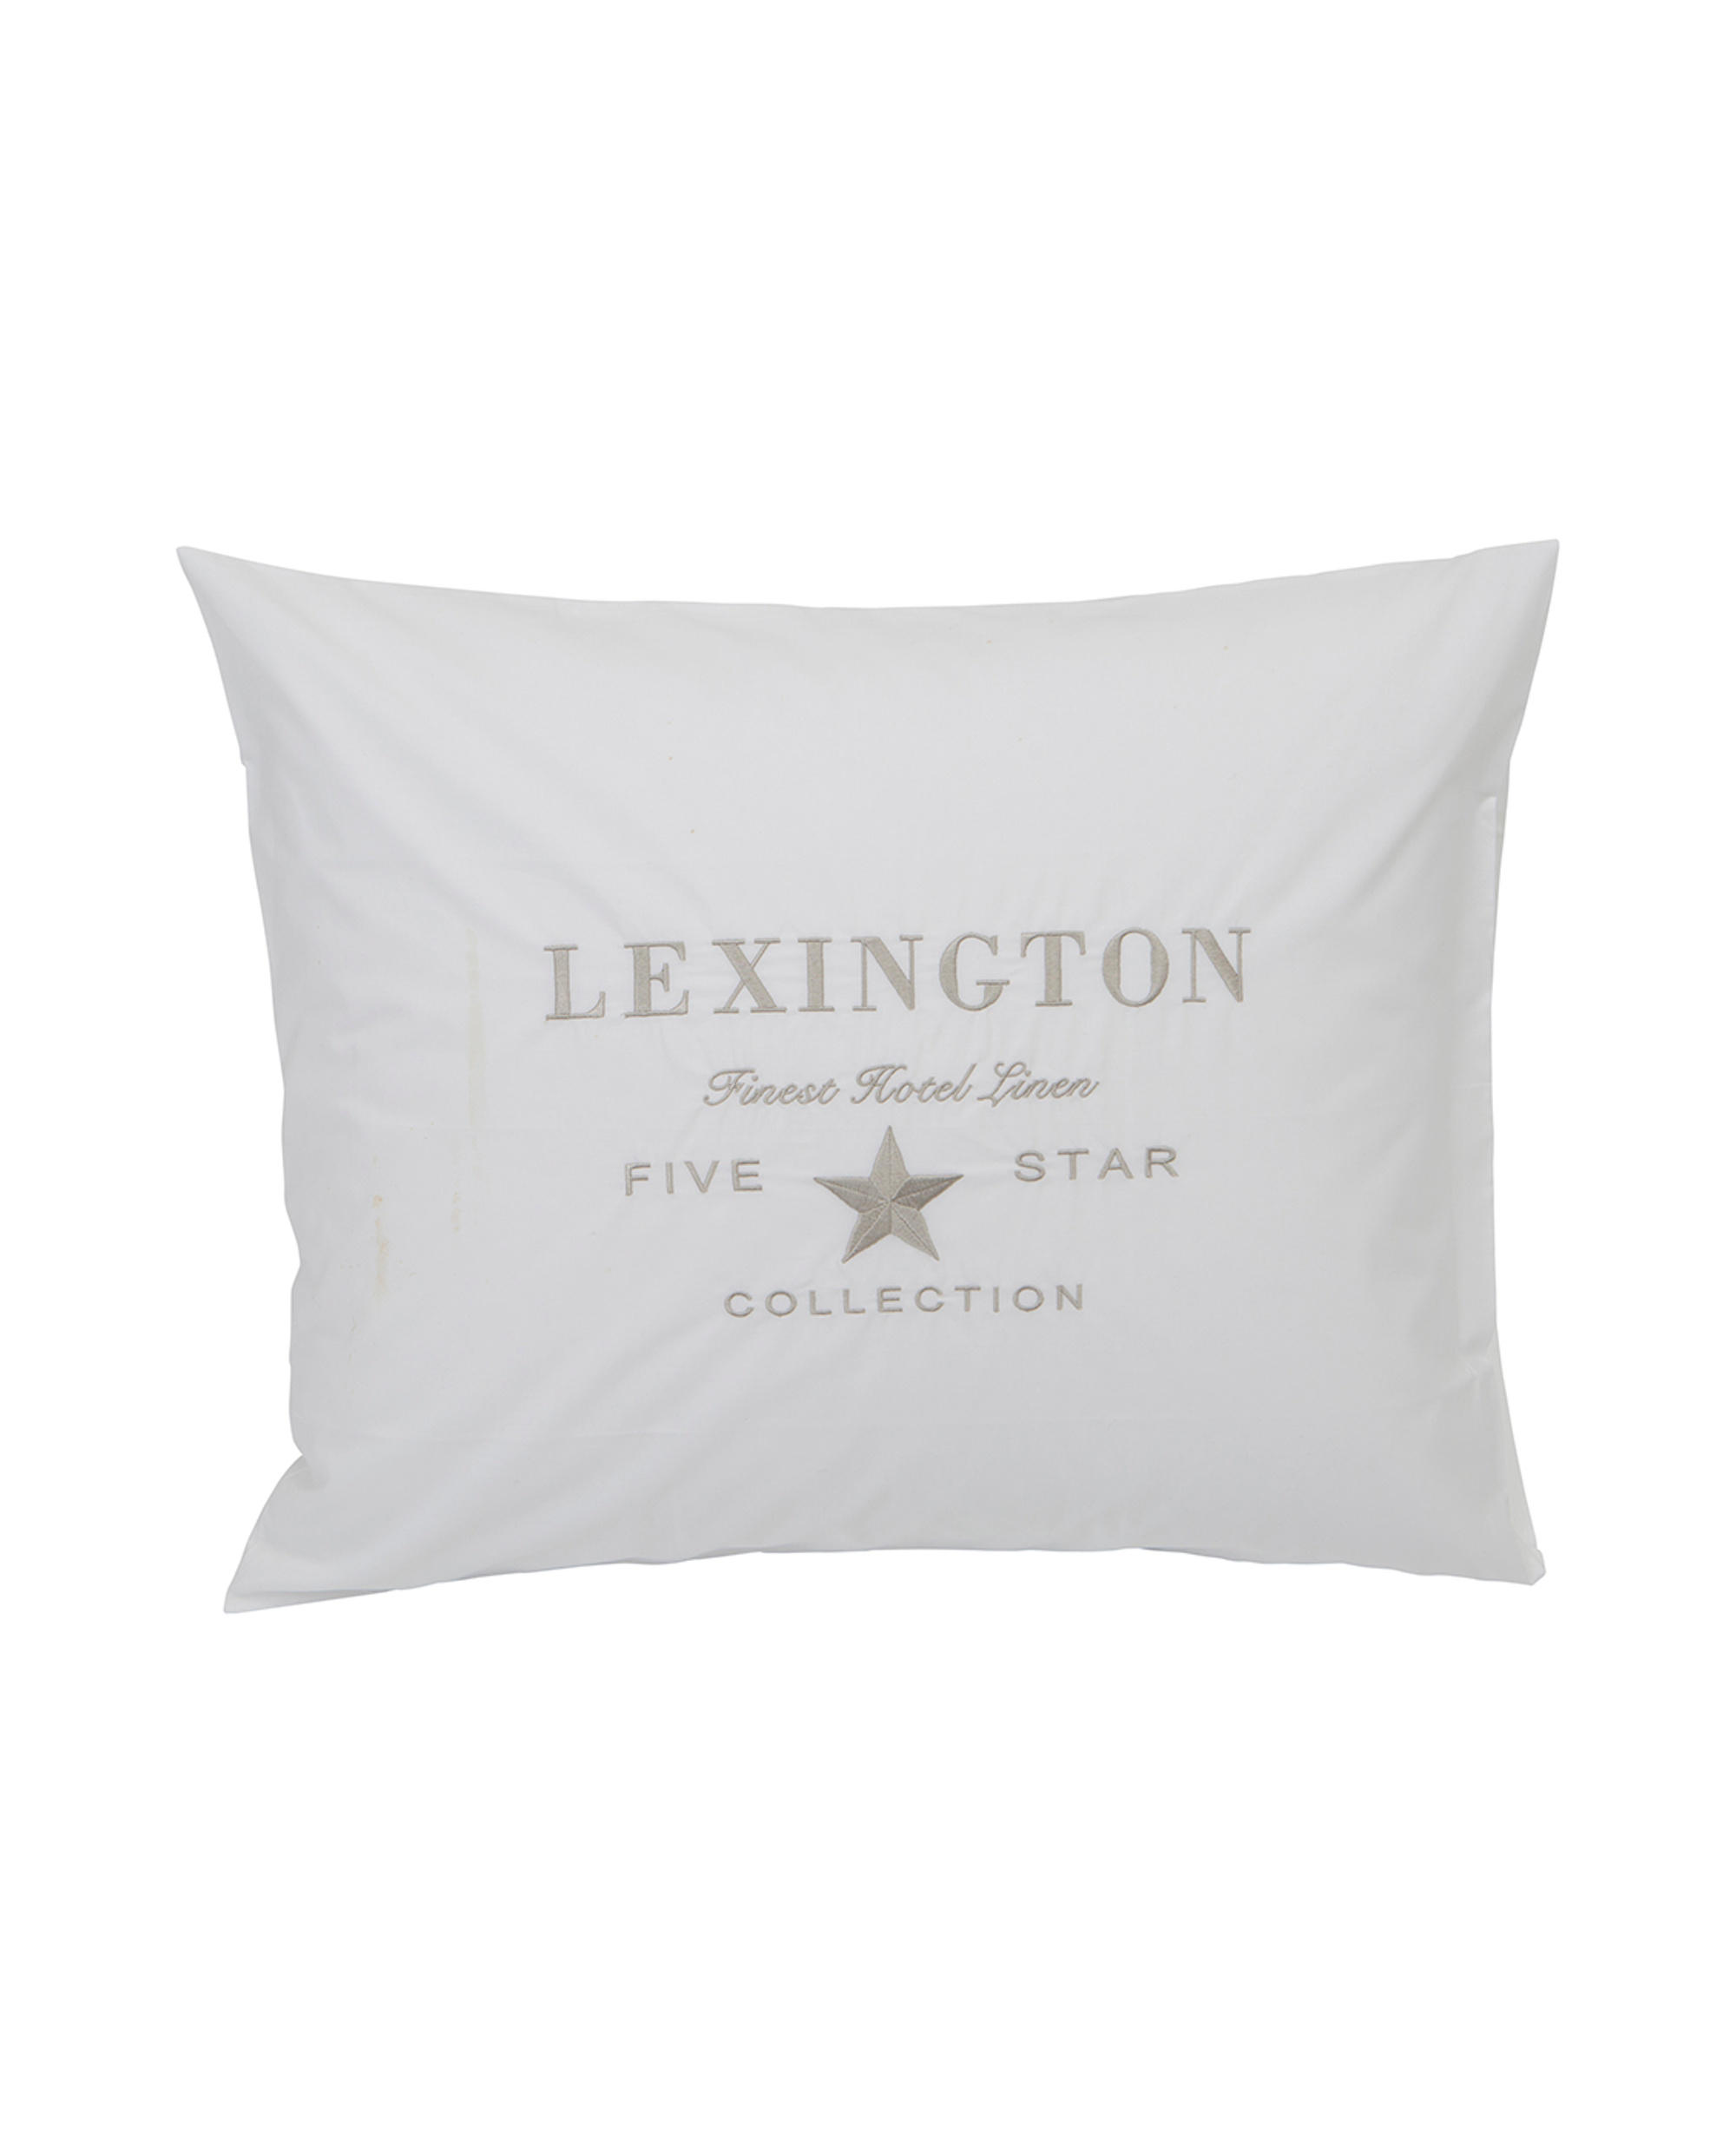 Hotel Embroidery White/Lt Beige Pillowcase